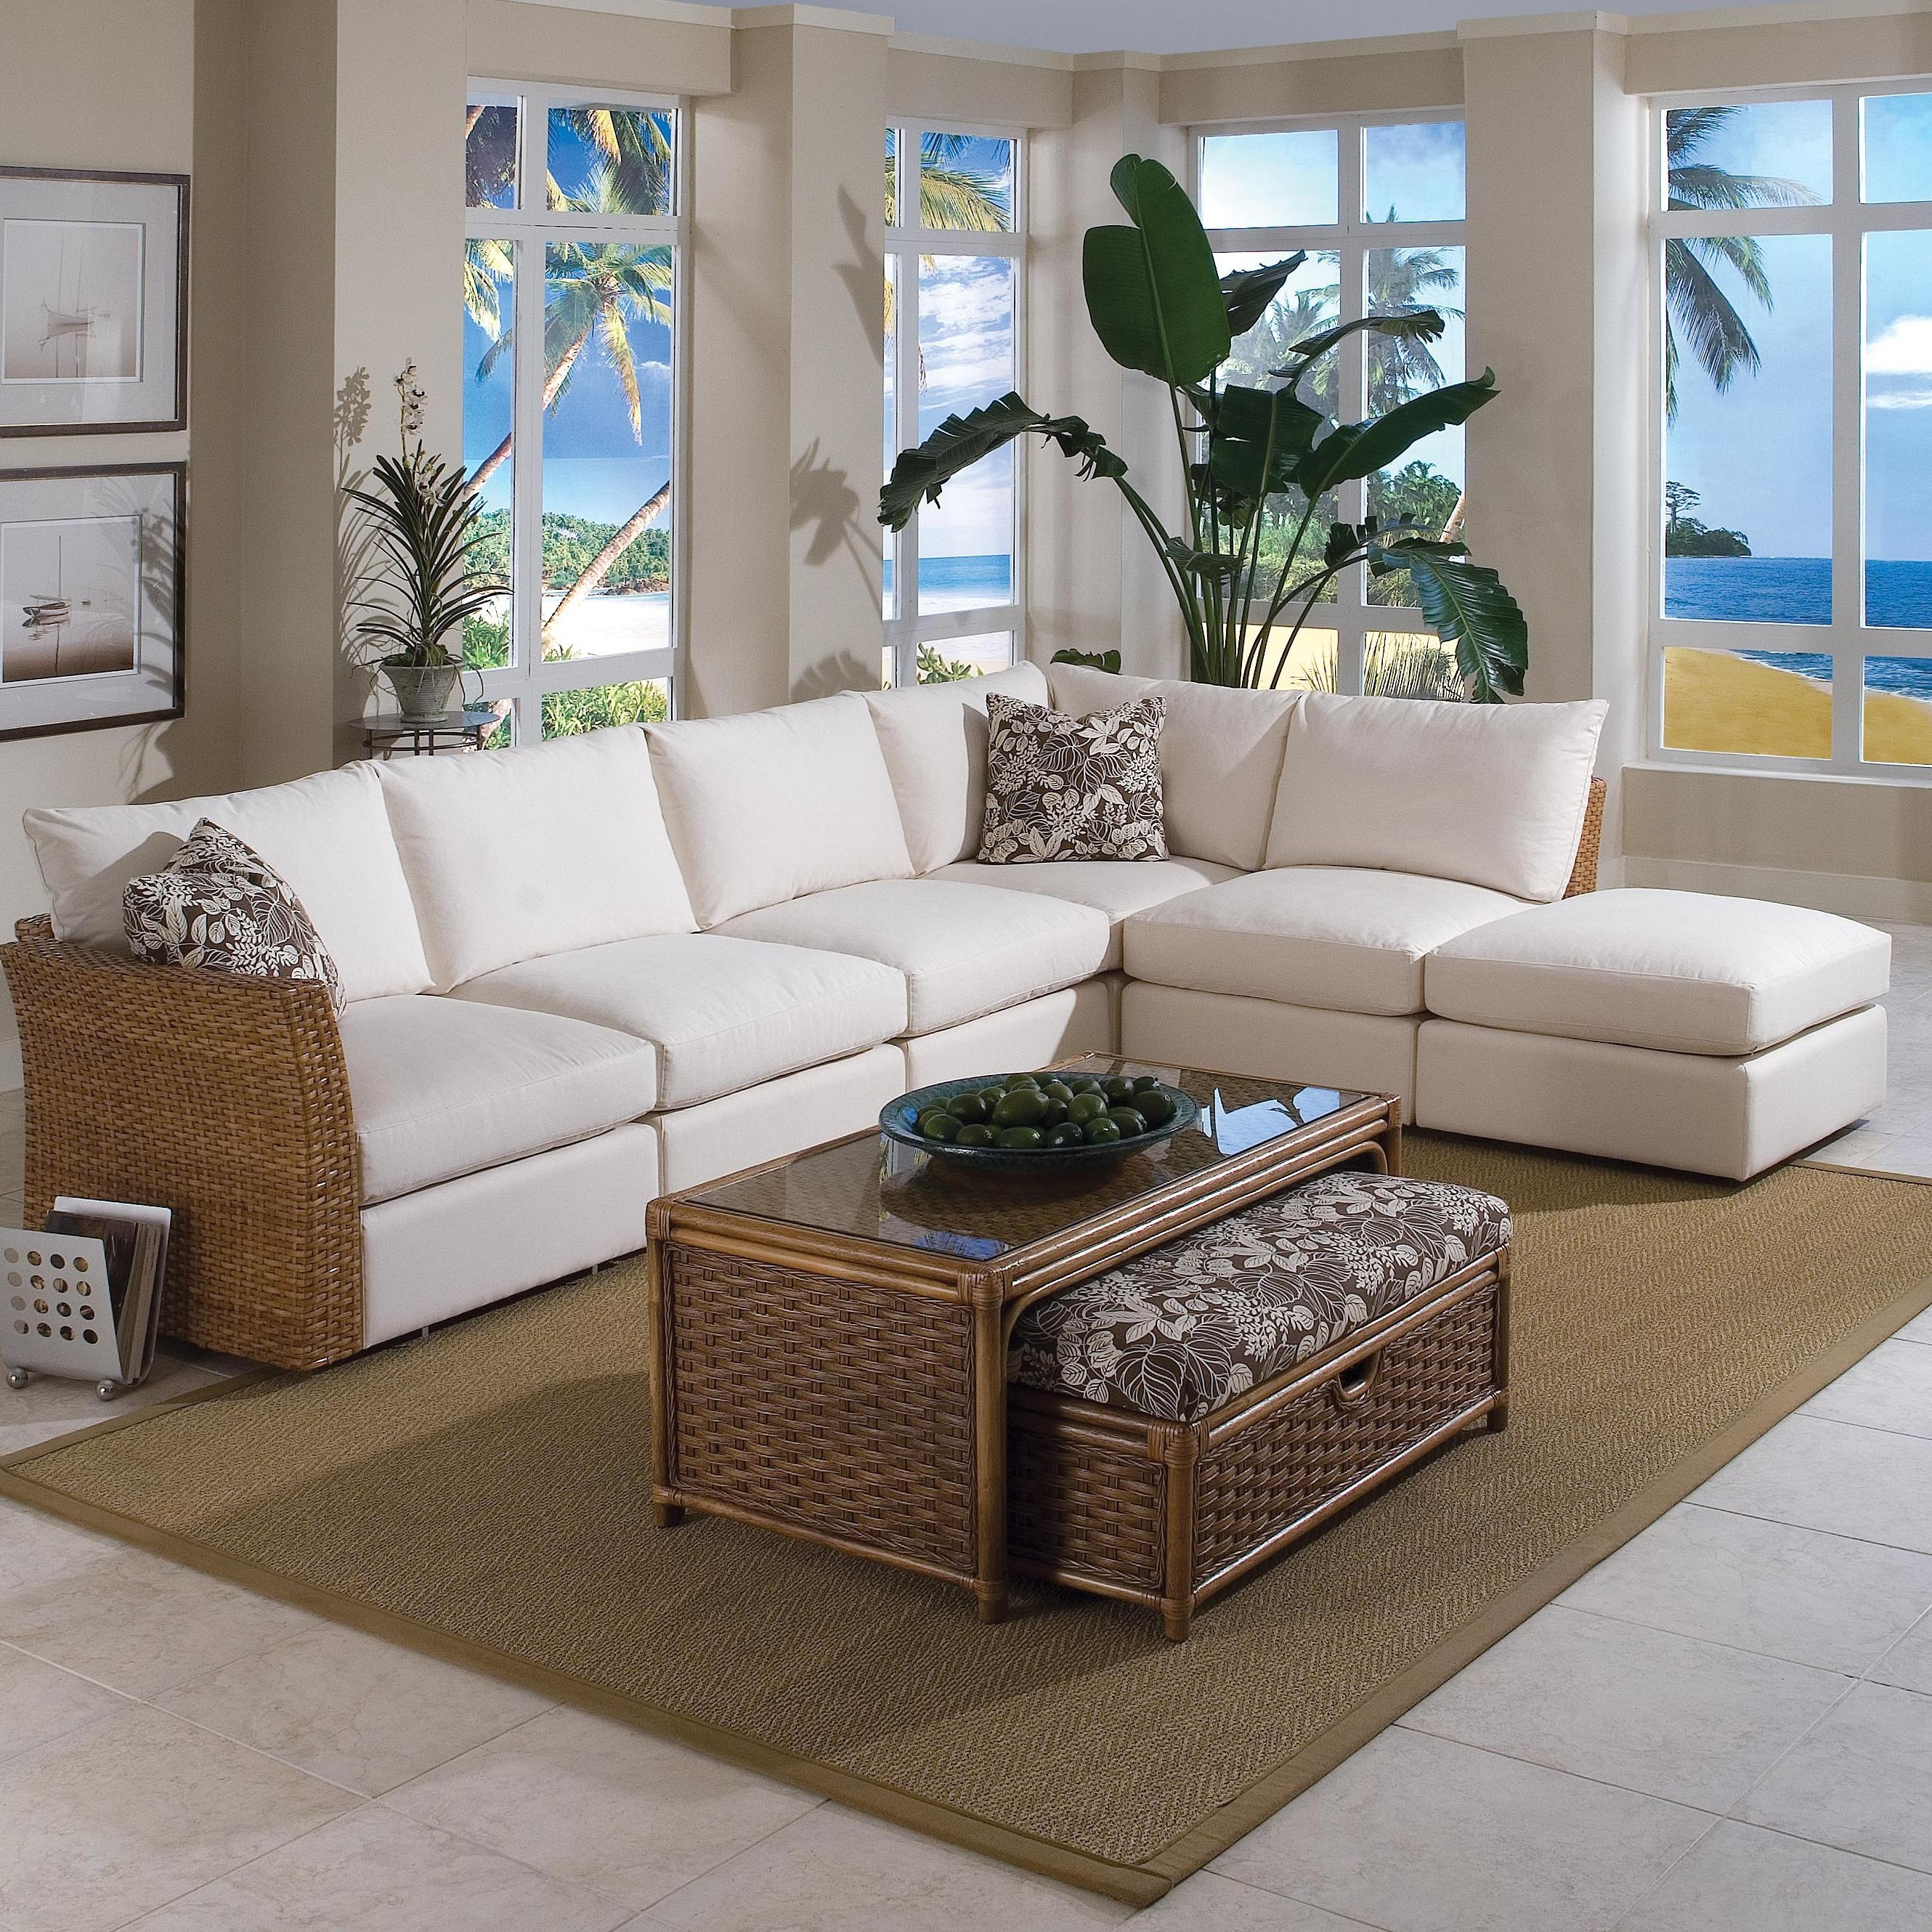 Newest Johnson City Tn Sectional Sofas For Braxton Culler Grand Water Point Tropical Sectional Sofa With Two (View 9 of 15)